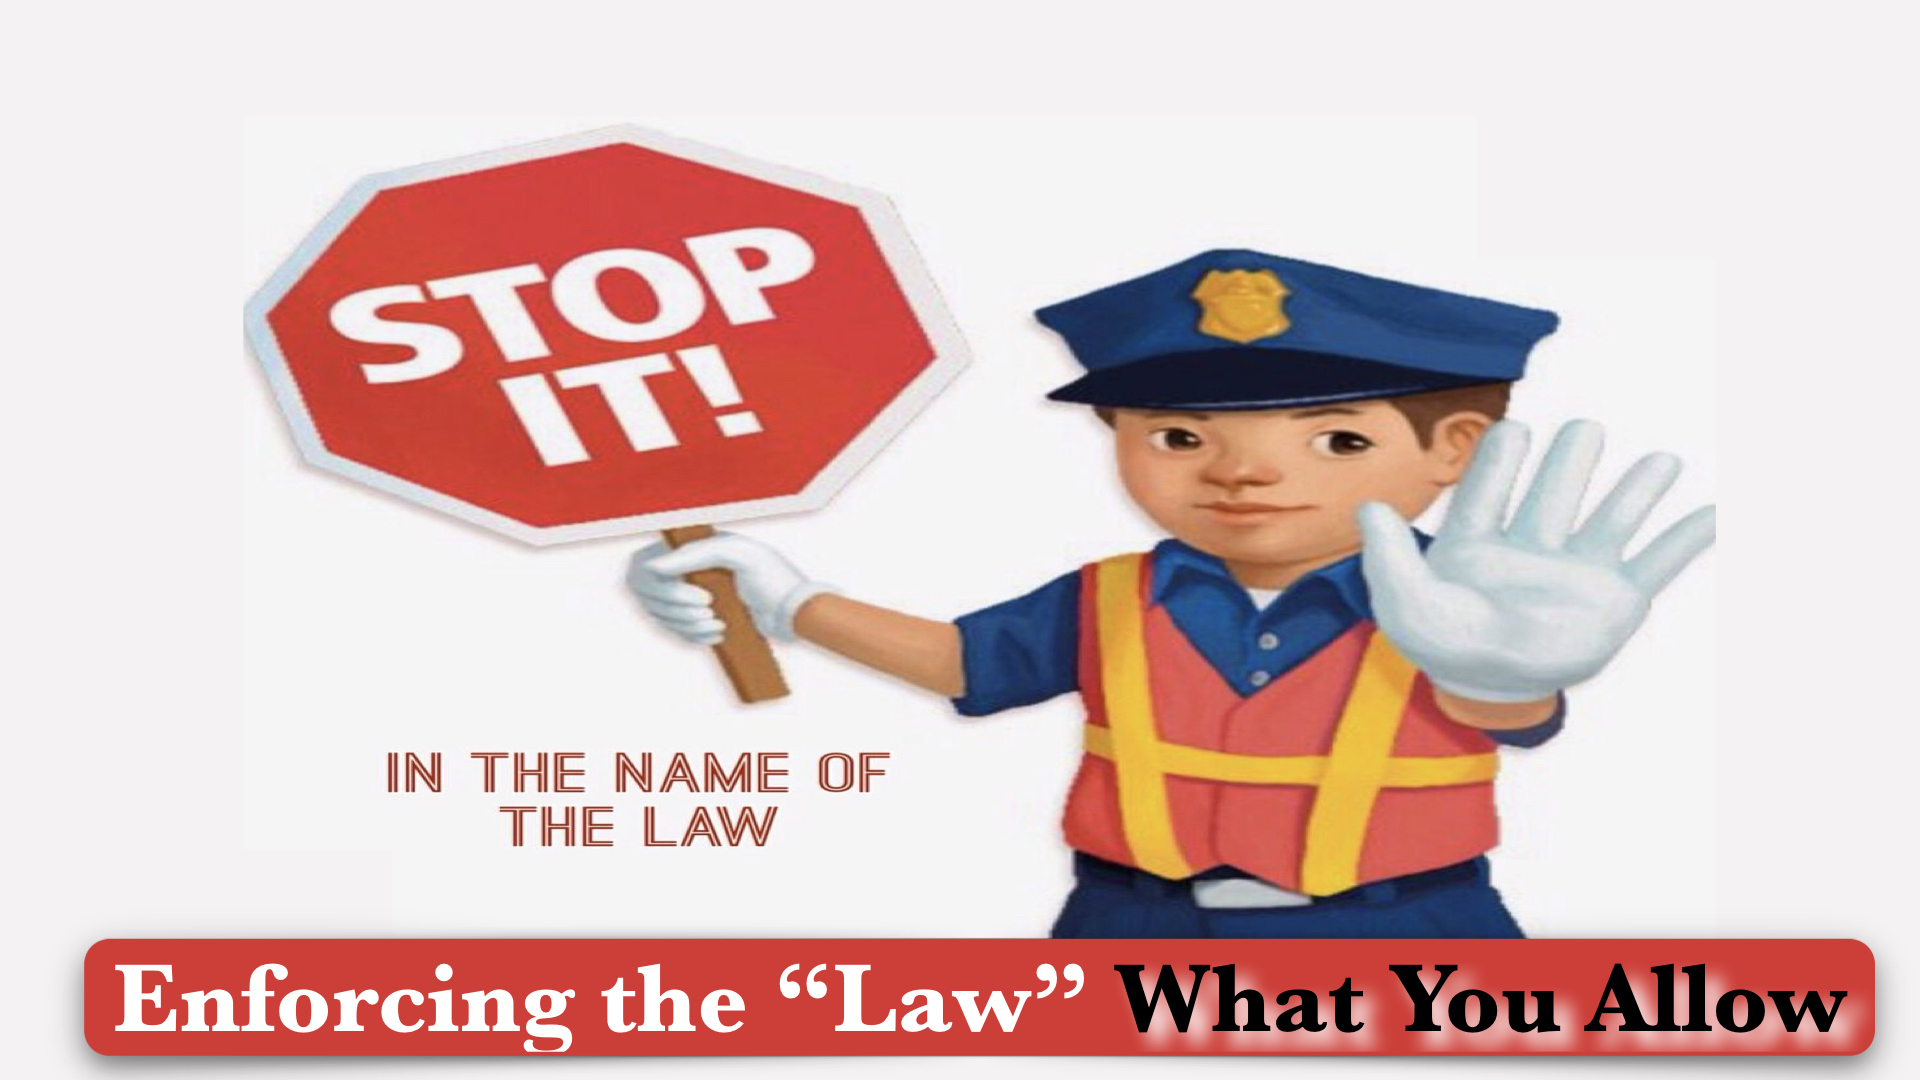 What You Allow Enforcing The Law 9302018